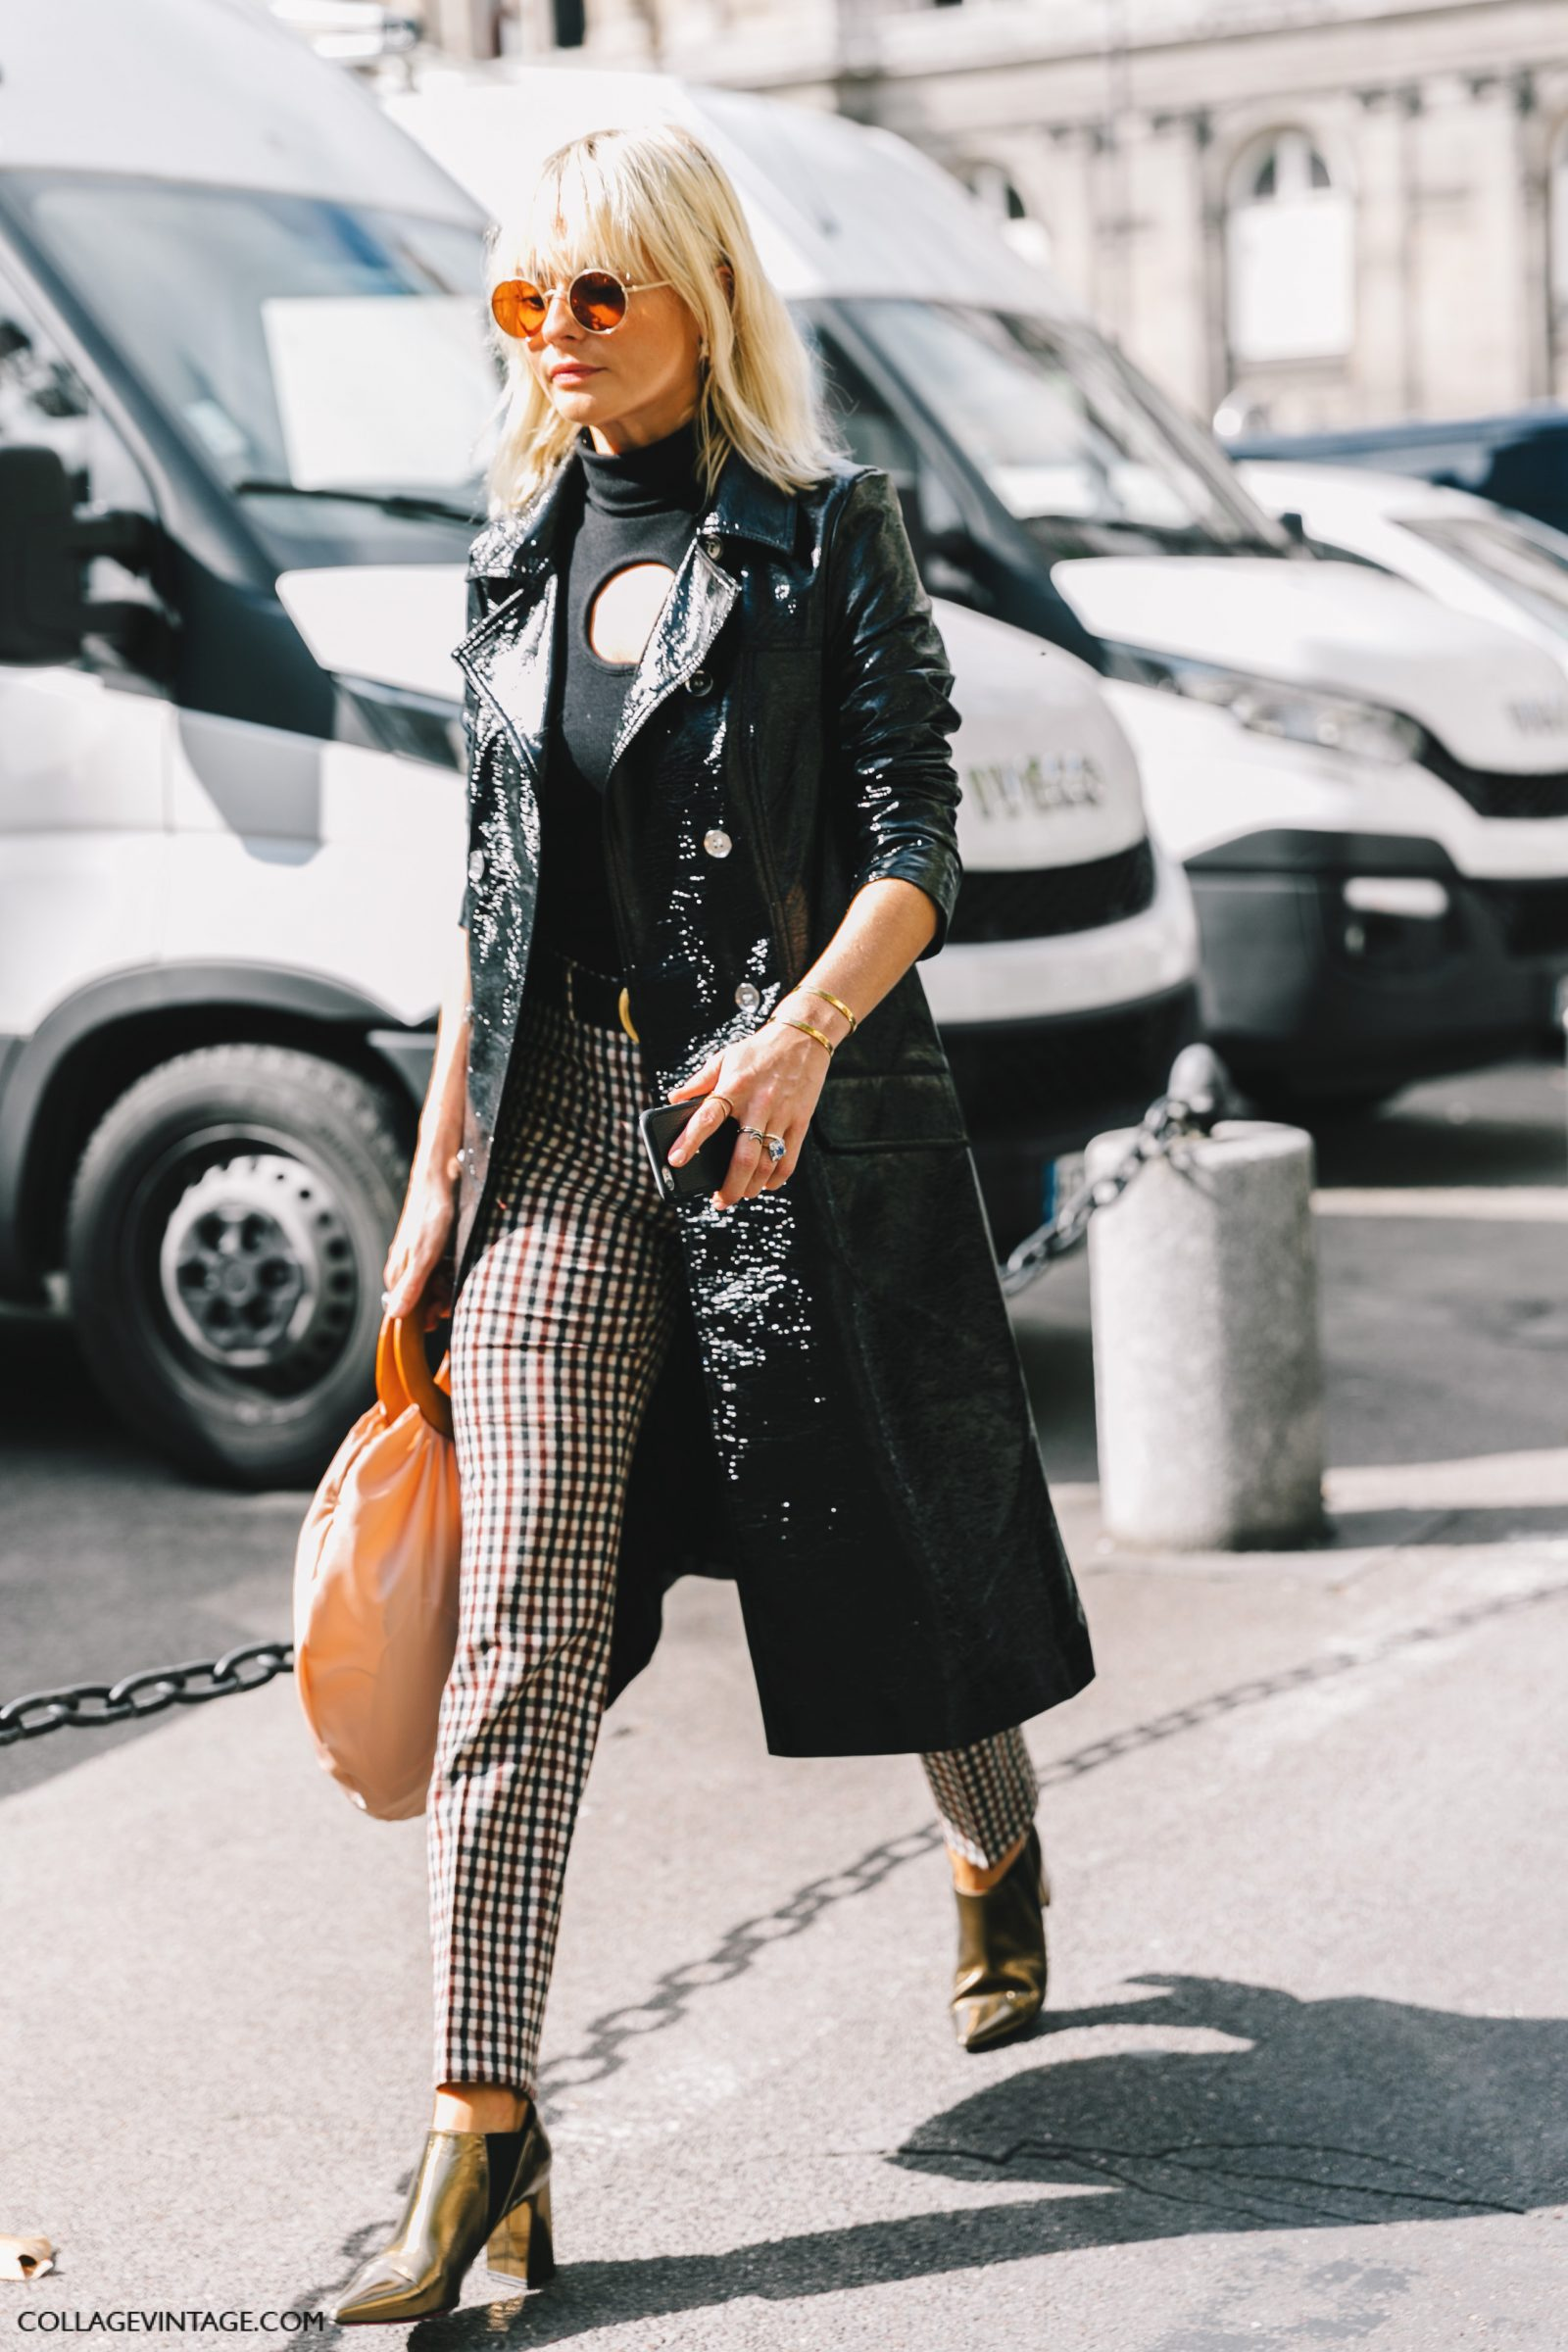 pfw-paris_fashion_week_ss17-street_style-outfits-collage_vintage-rochas-courreges-dries_van_noten-lanvin-guy_laroche-115-1600x2400